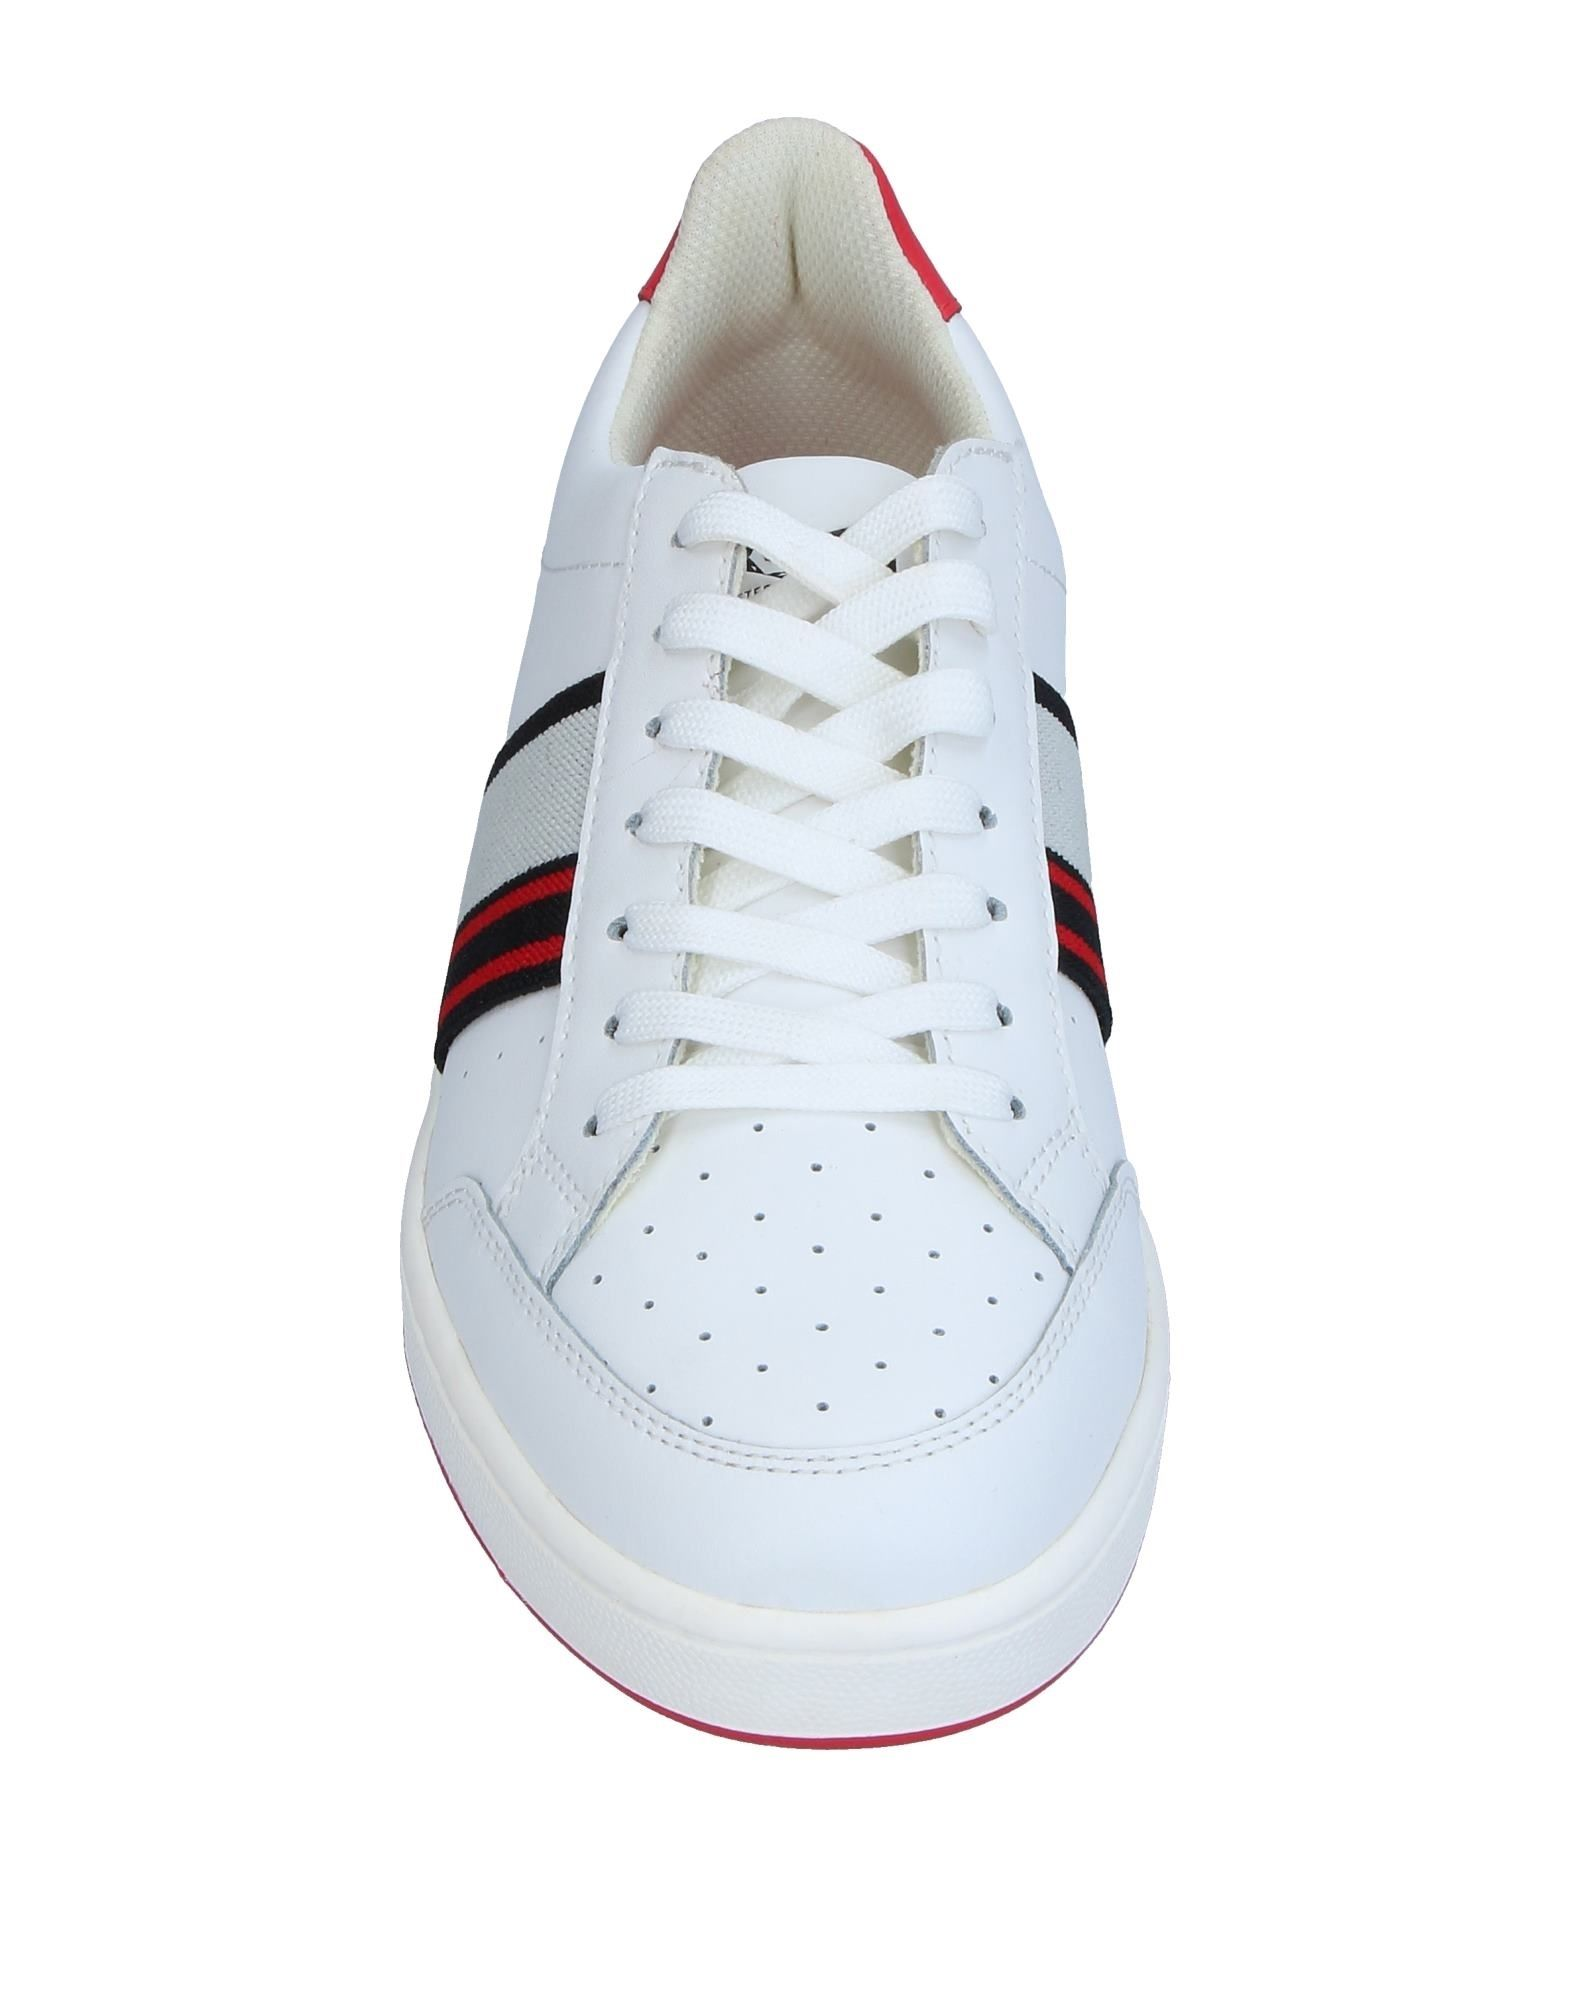 Moa Master Of Arts Sneakers - Men Sneakers Moa Master Of Arts Sneakers Men online on  Canada - 11333557KV fe2449